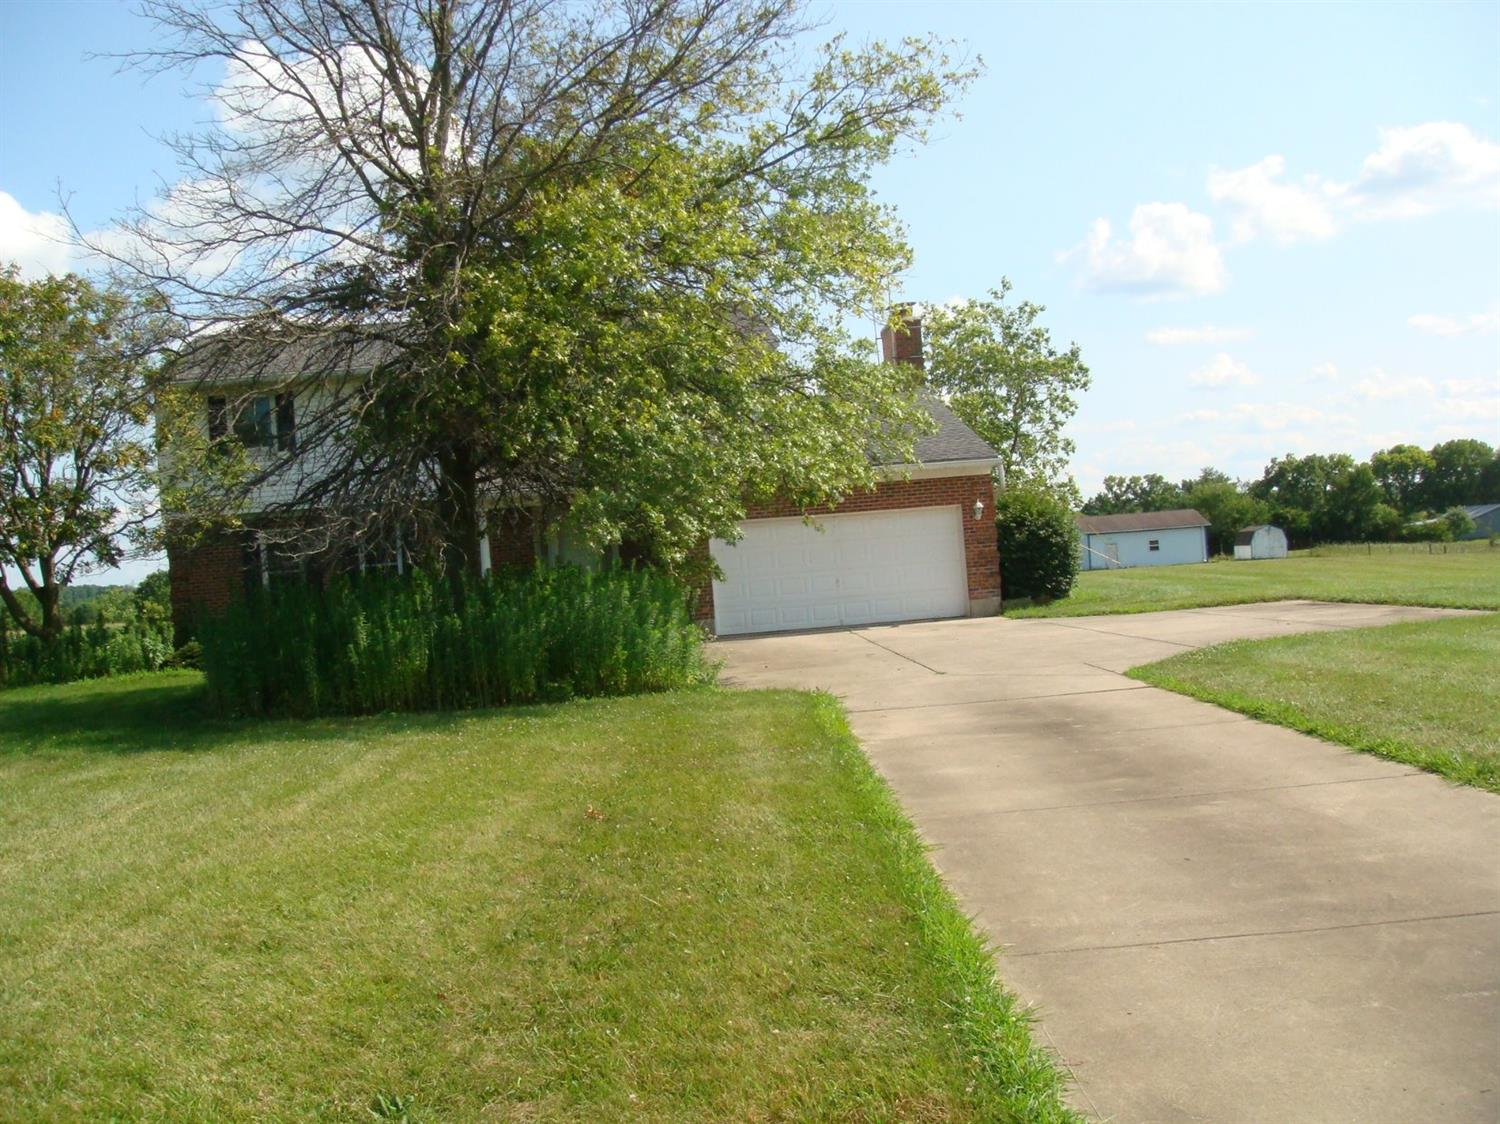 Photo 3 for 7007 Peoria Reily Rd Reily Twp., OH 45056